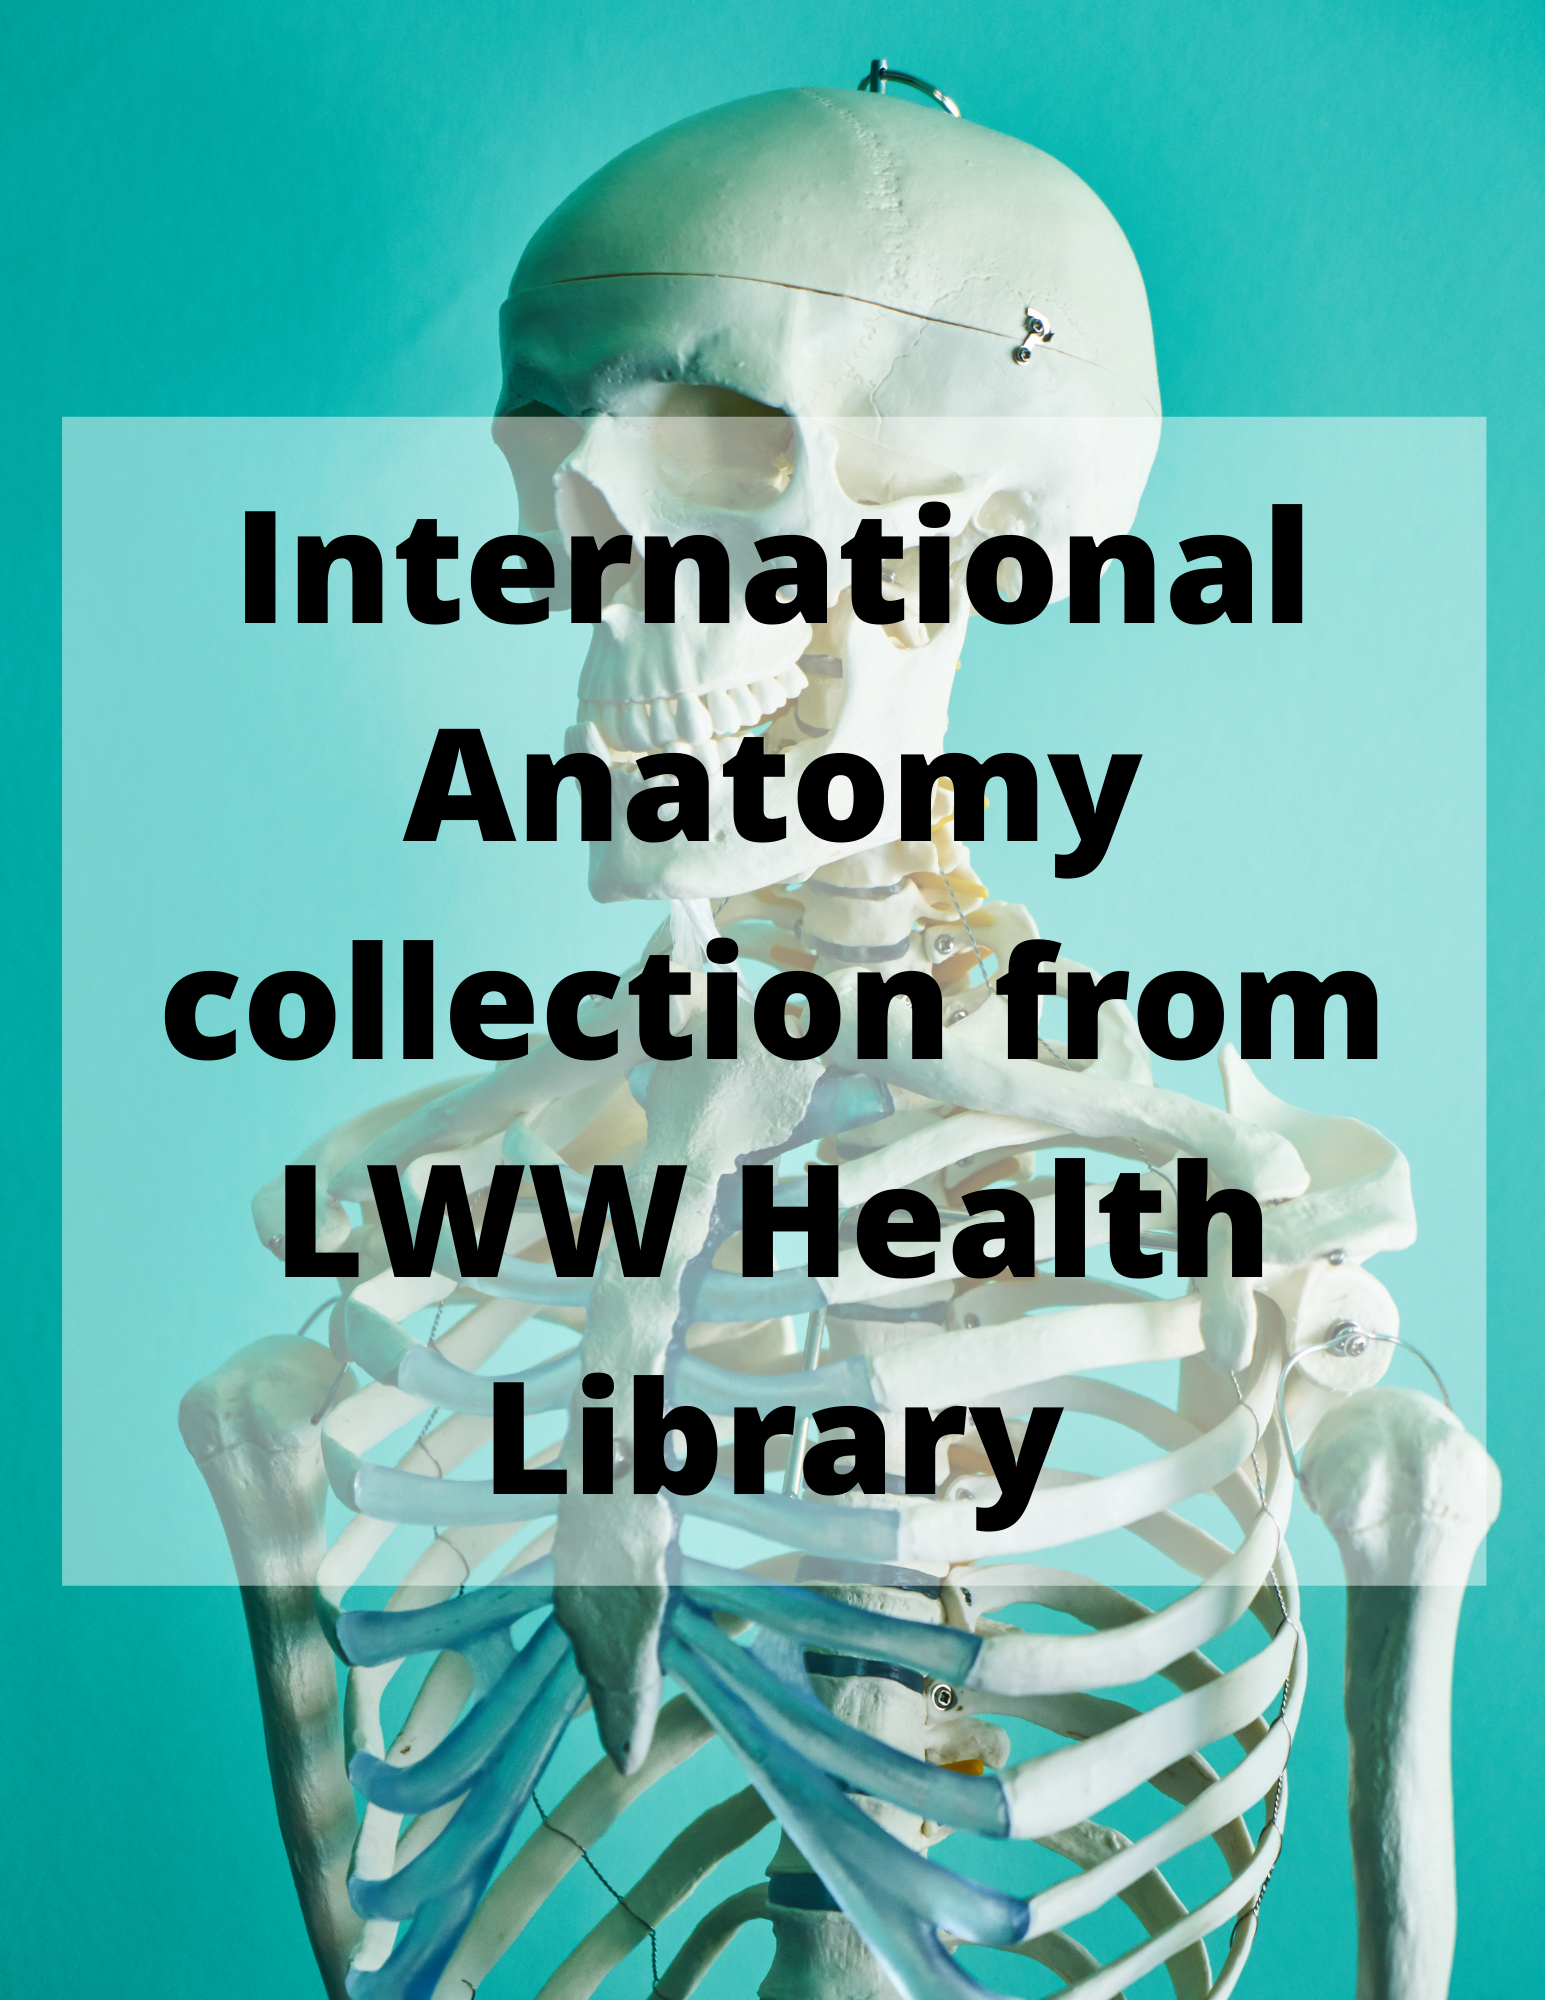 International Anatomy collection from LWW Health Library